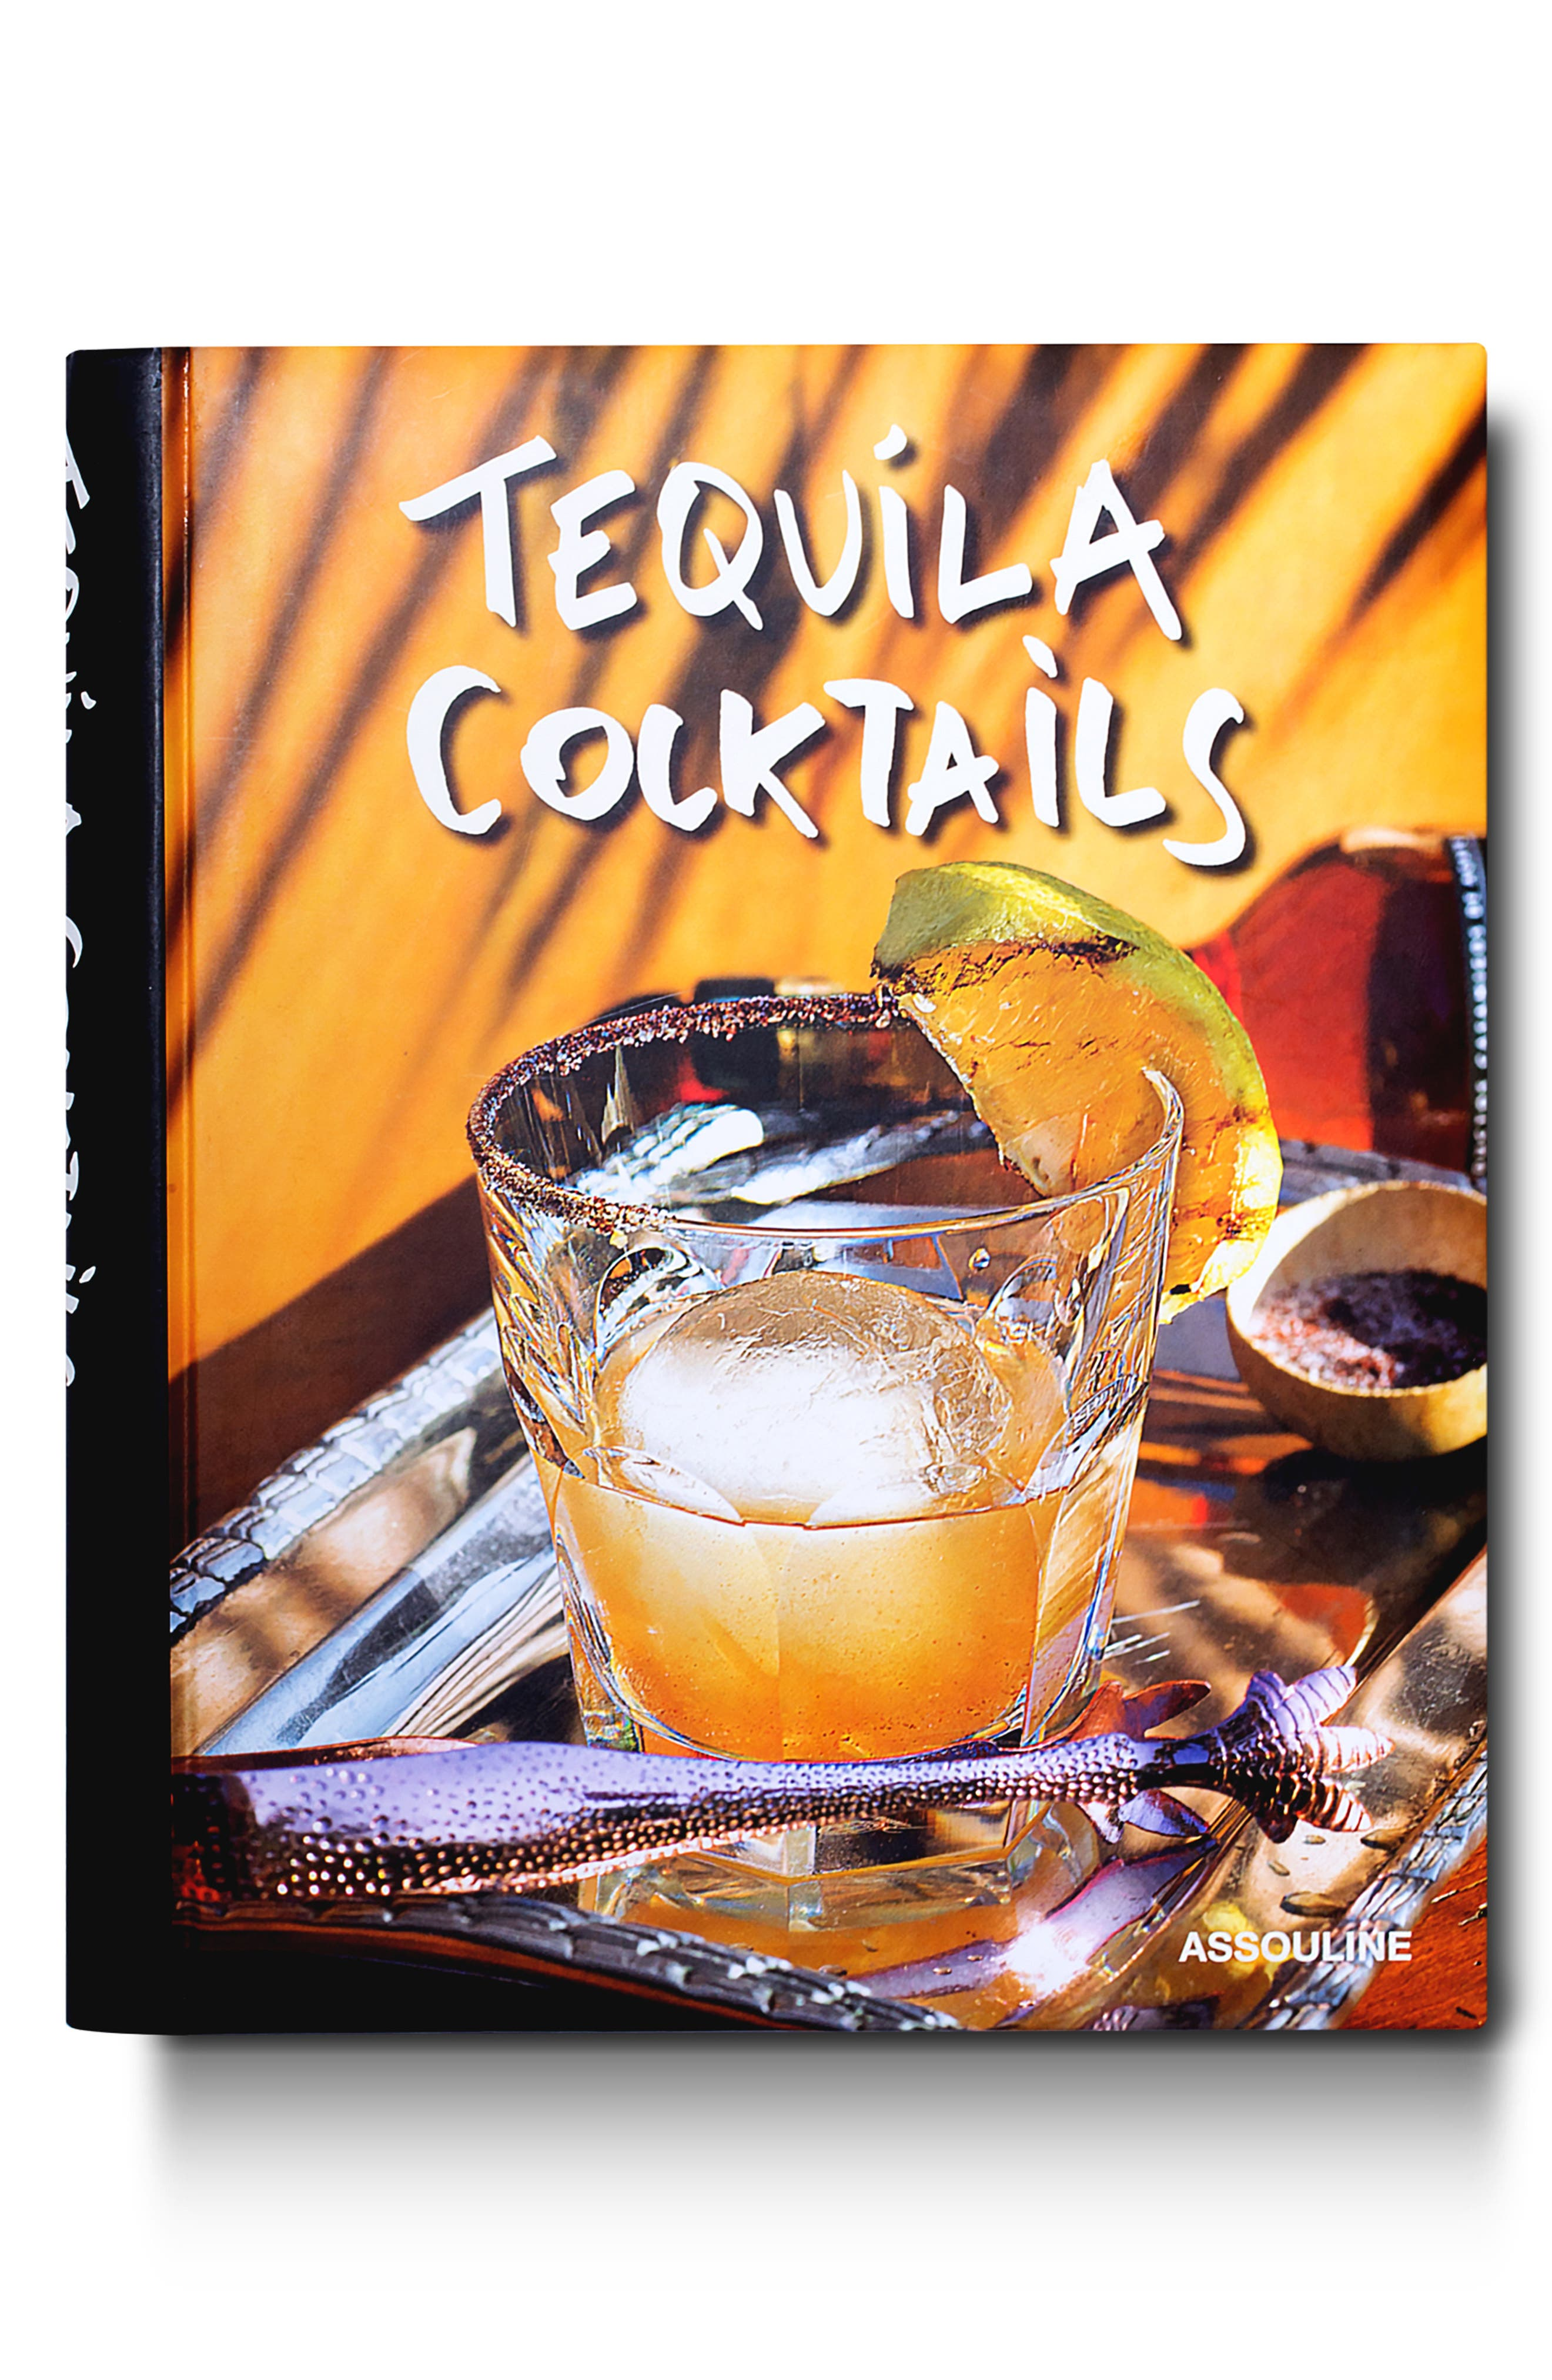 ISBN 9781614285441 product image for 'Tequila Cocktails' Book   upcitemdb.com